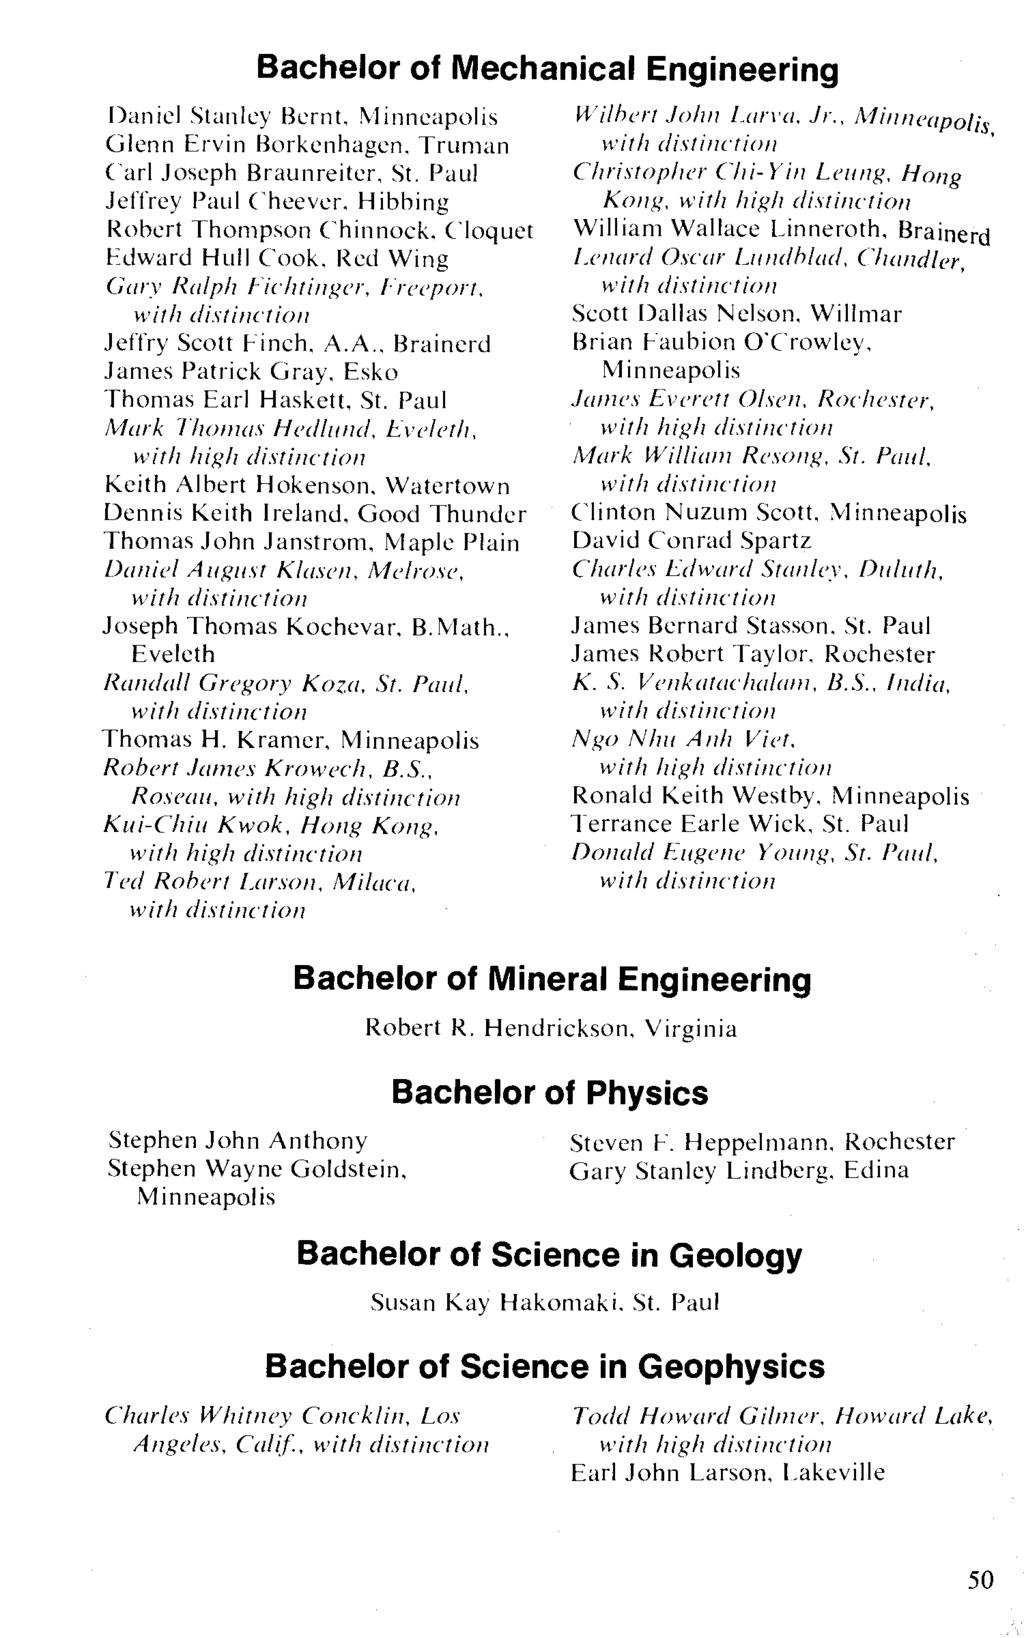 Bachelor of Mechanical Engineering Daniel Stanley Bernt,!\Iinneapolis Glenn Ervin Borkenhagen. Truman Carl Joseph Braunreiter.